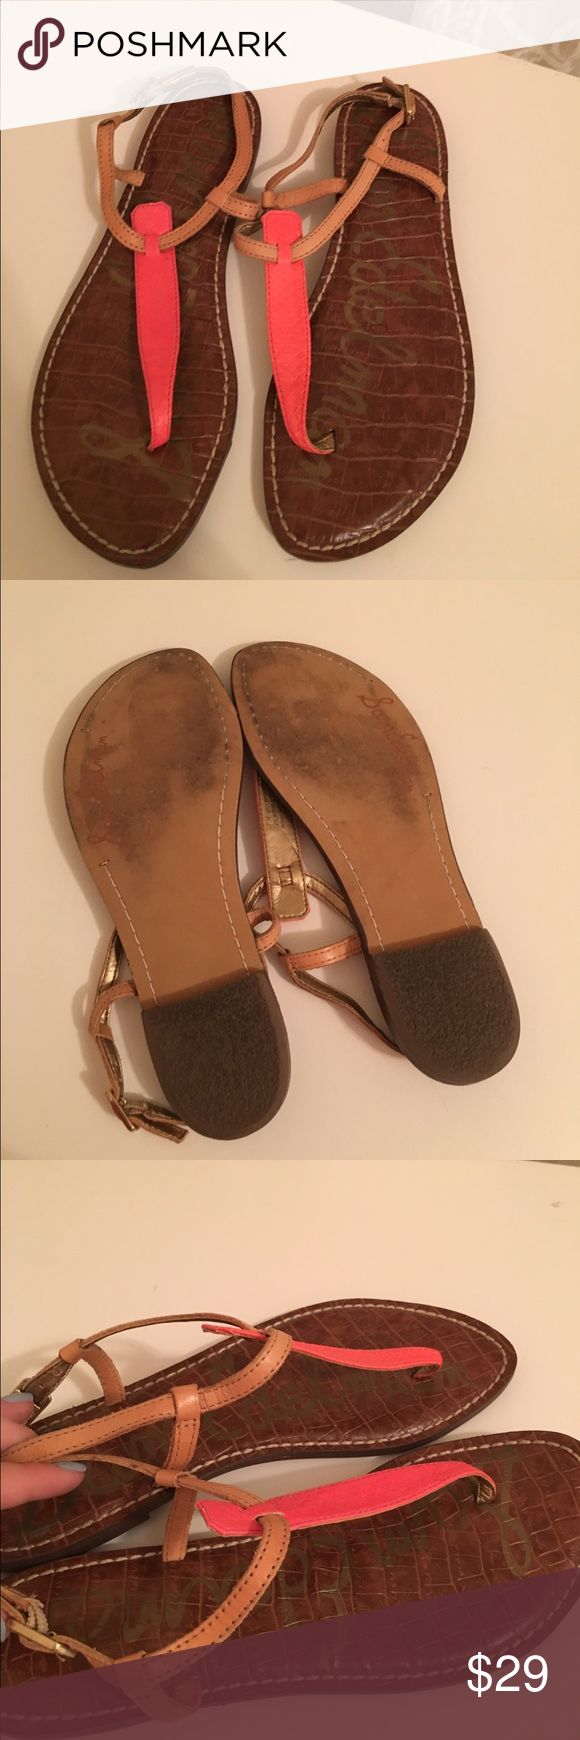 Sam Edelman Gigi Sandals Sam Edelman Gigi Sandals. Dark brown sole. Tan and hot coral/orange leather. Gently used. ✌🏻💗👡 Sam Edelman Shoes Sandals